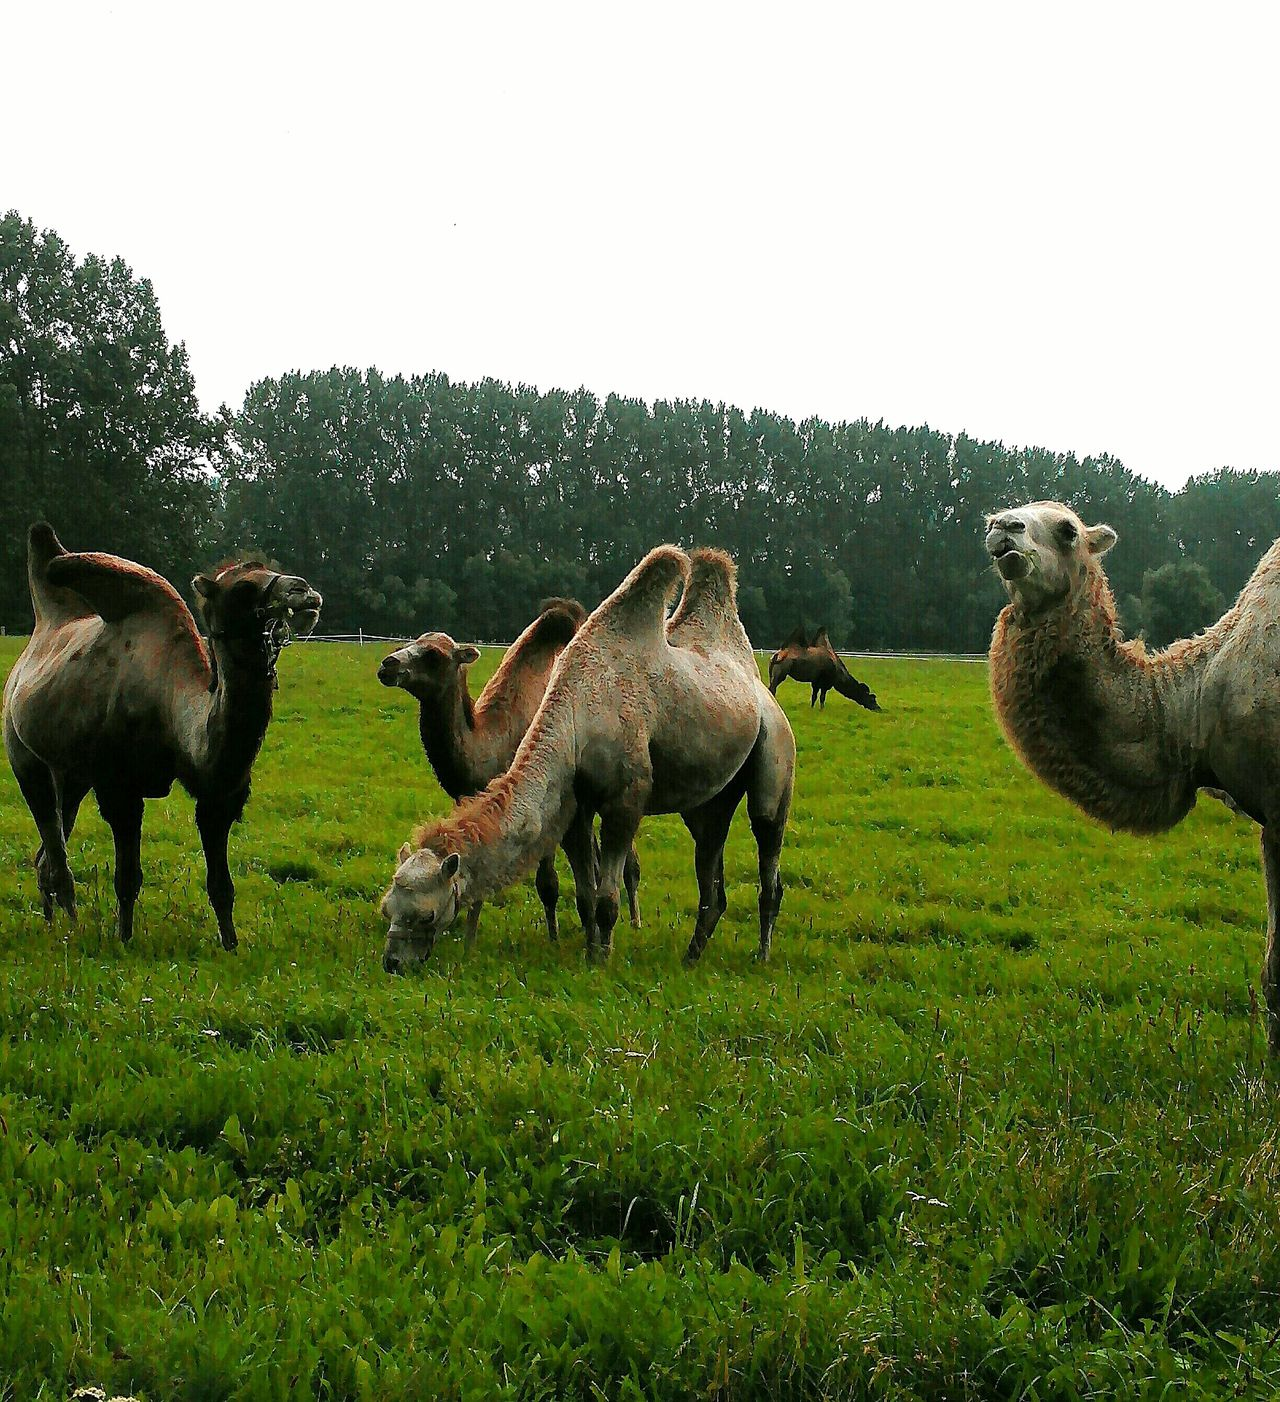 Kamele Sind Los In Meck-Pom Large Group Of Animals Grazing No People Outdoors Livestock Animal Wildlife